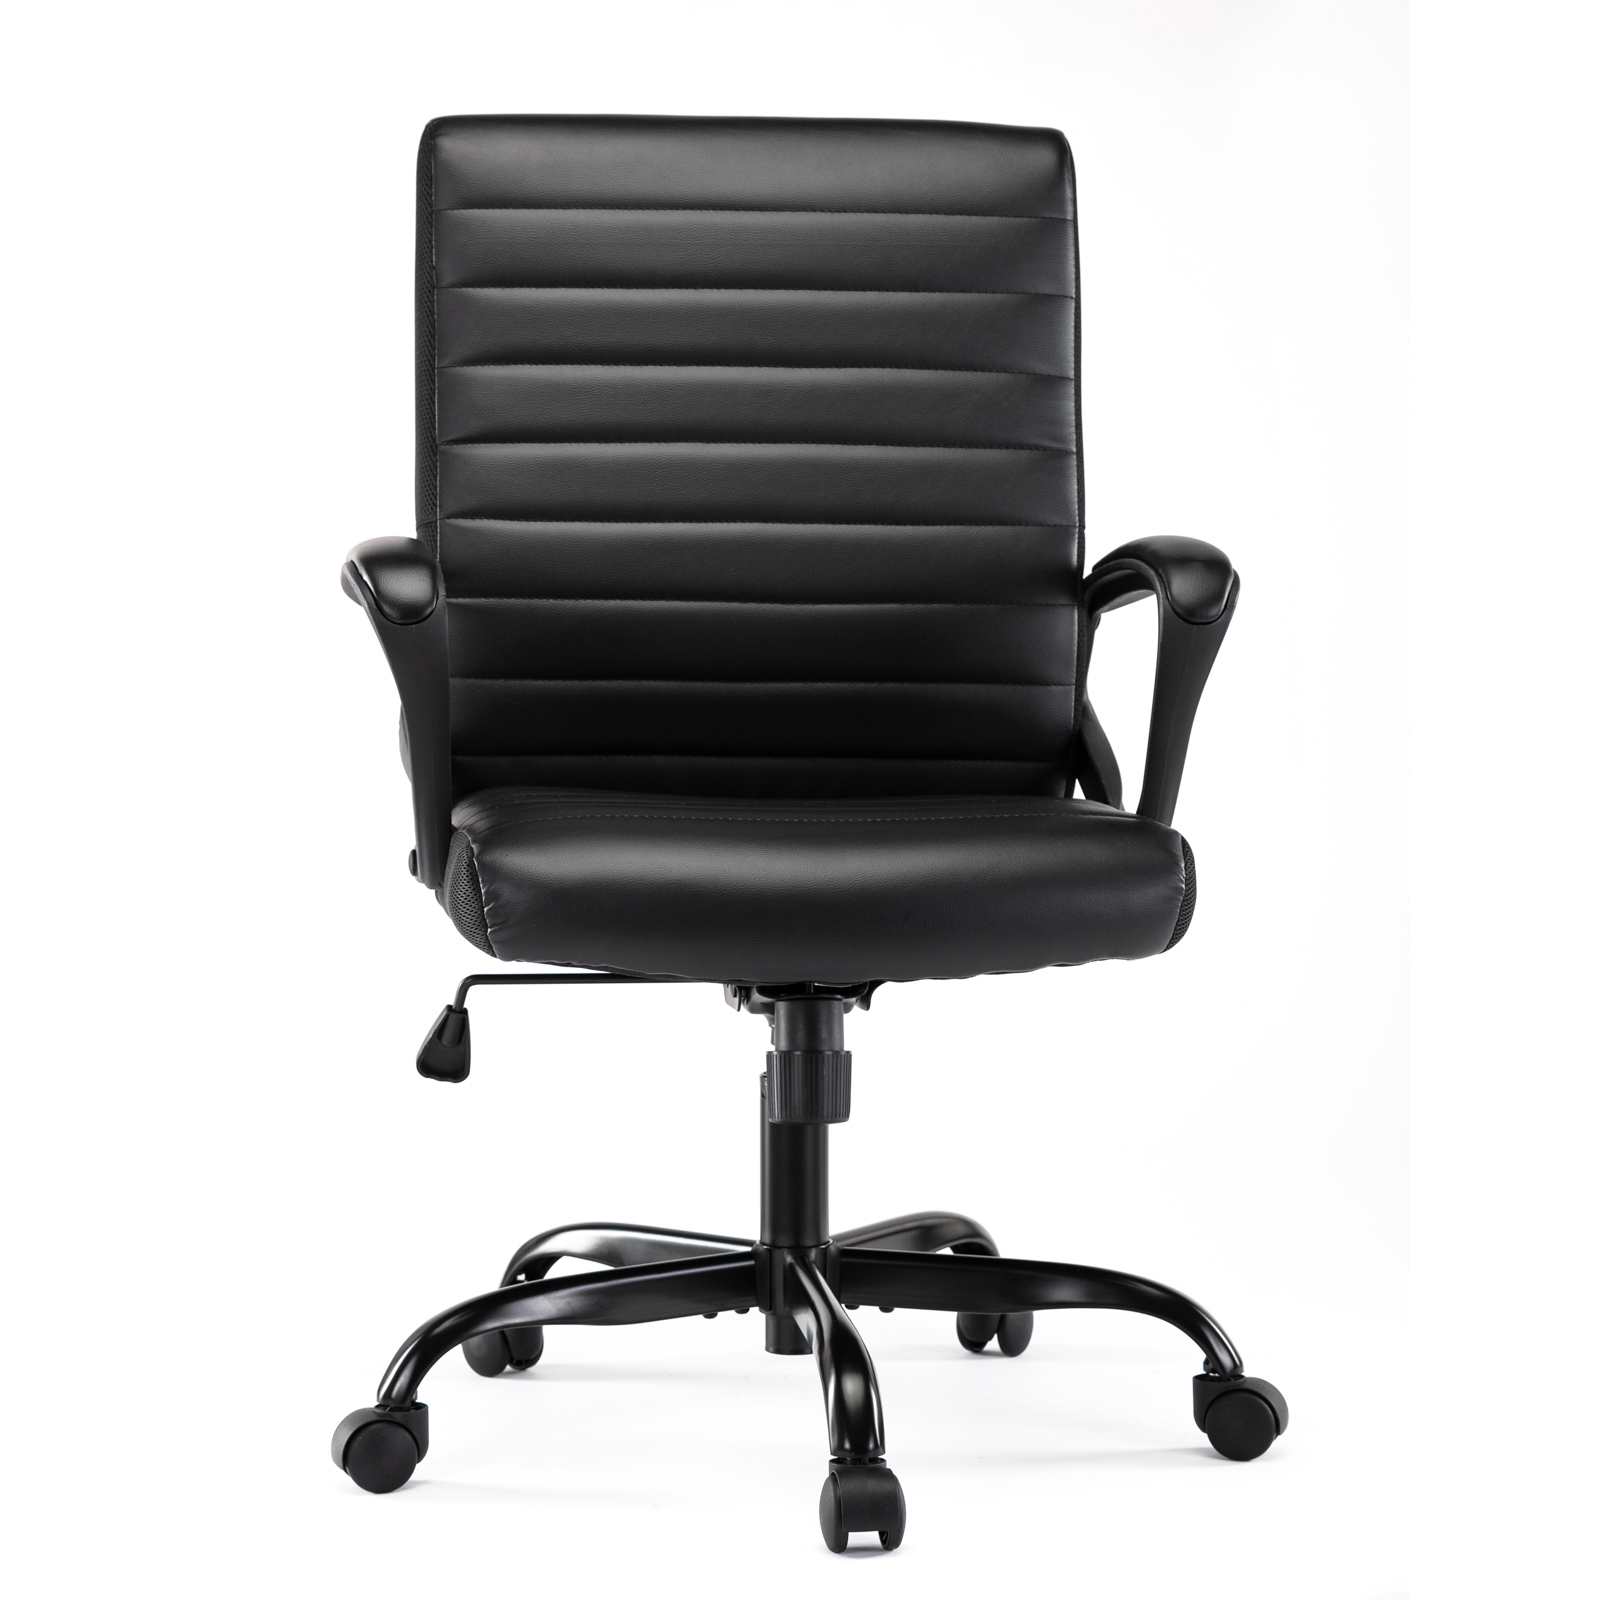 USA STOCK Free Shipping Ergonomic Executive Bonded Leather Computer Chair,Office Swivel Chair, Desk Chair